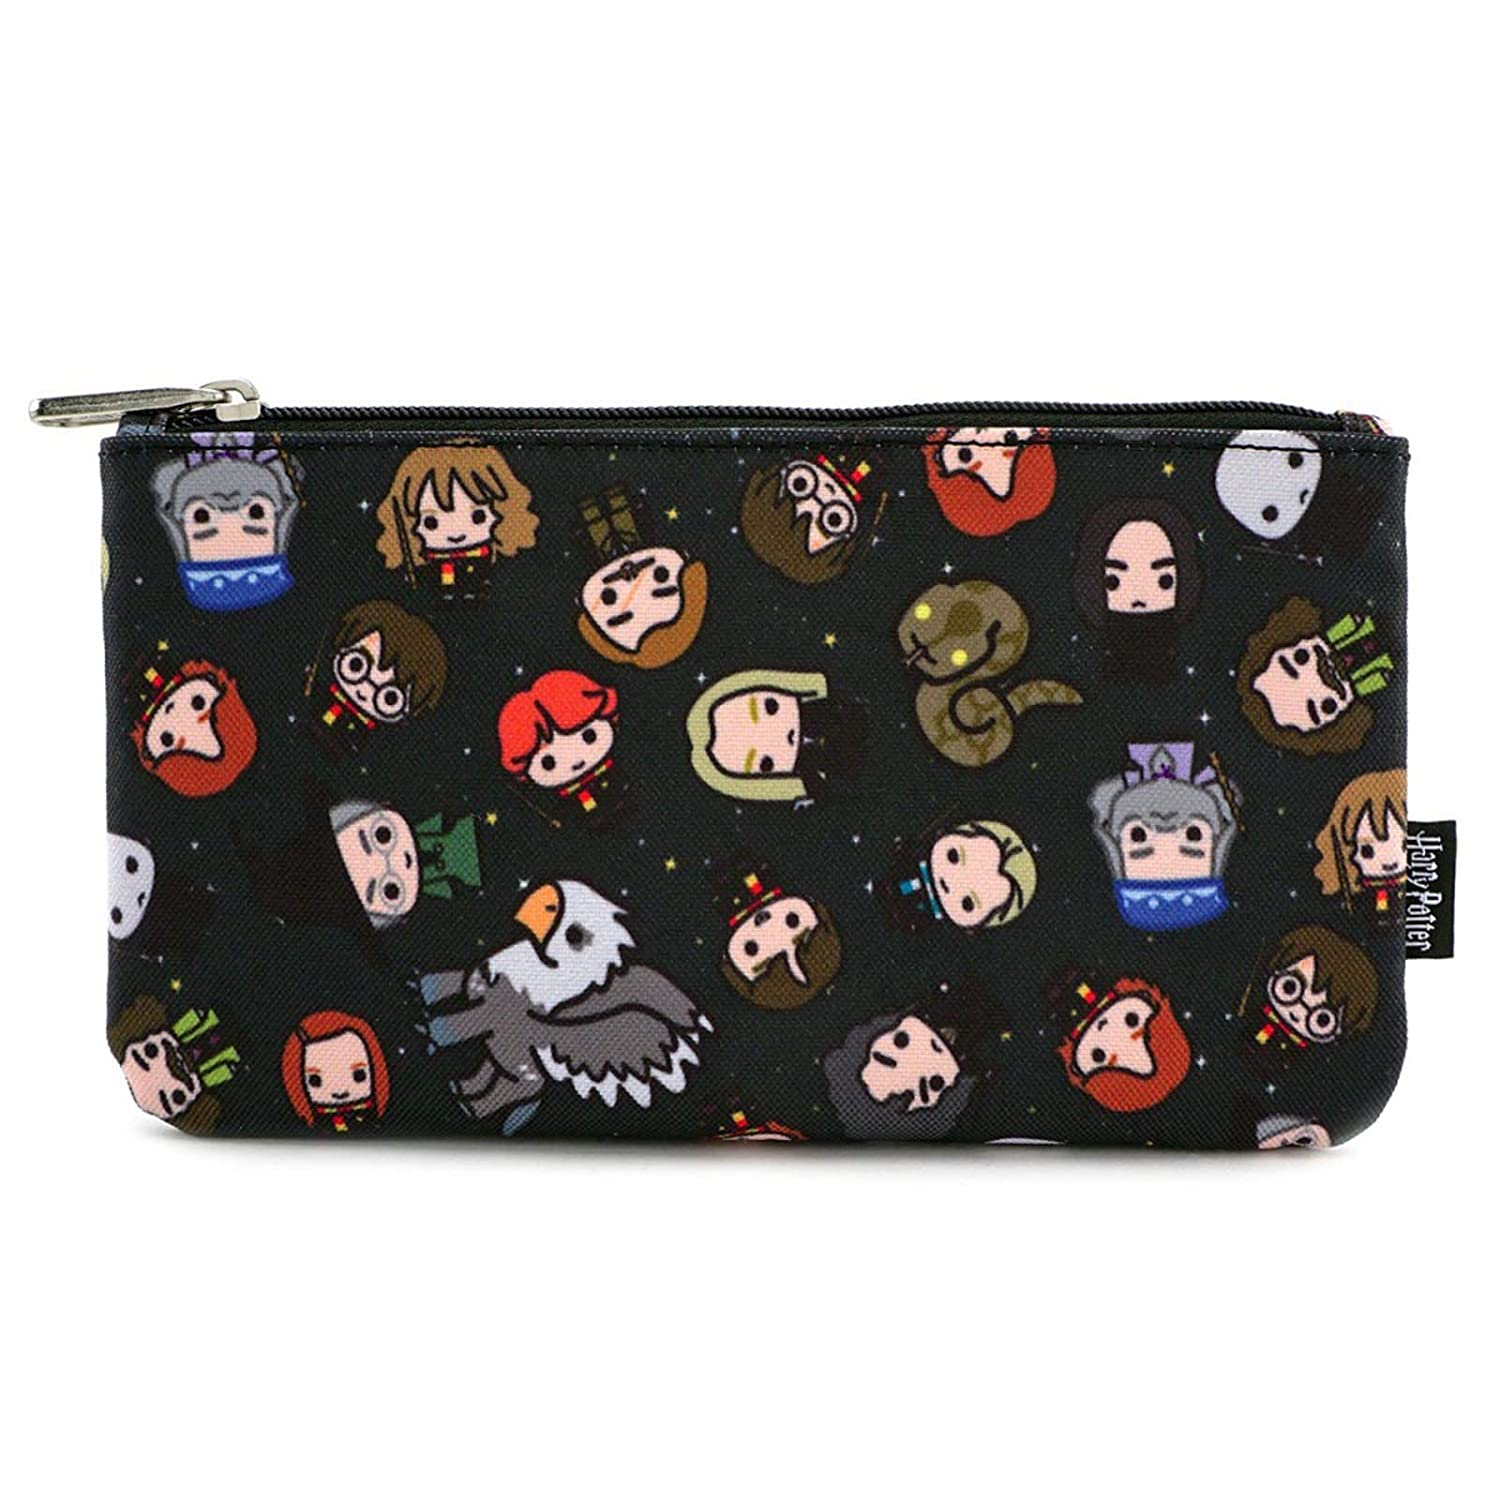 Loungefly Harry Potter Character All Over Print Zipper Pouch Bag